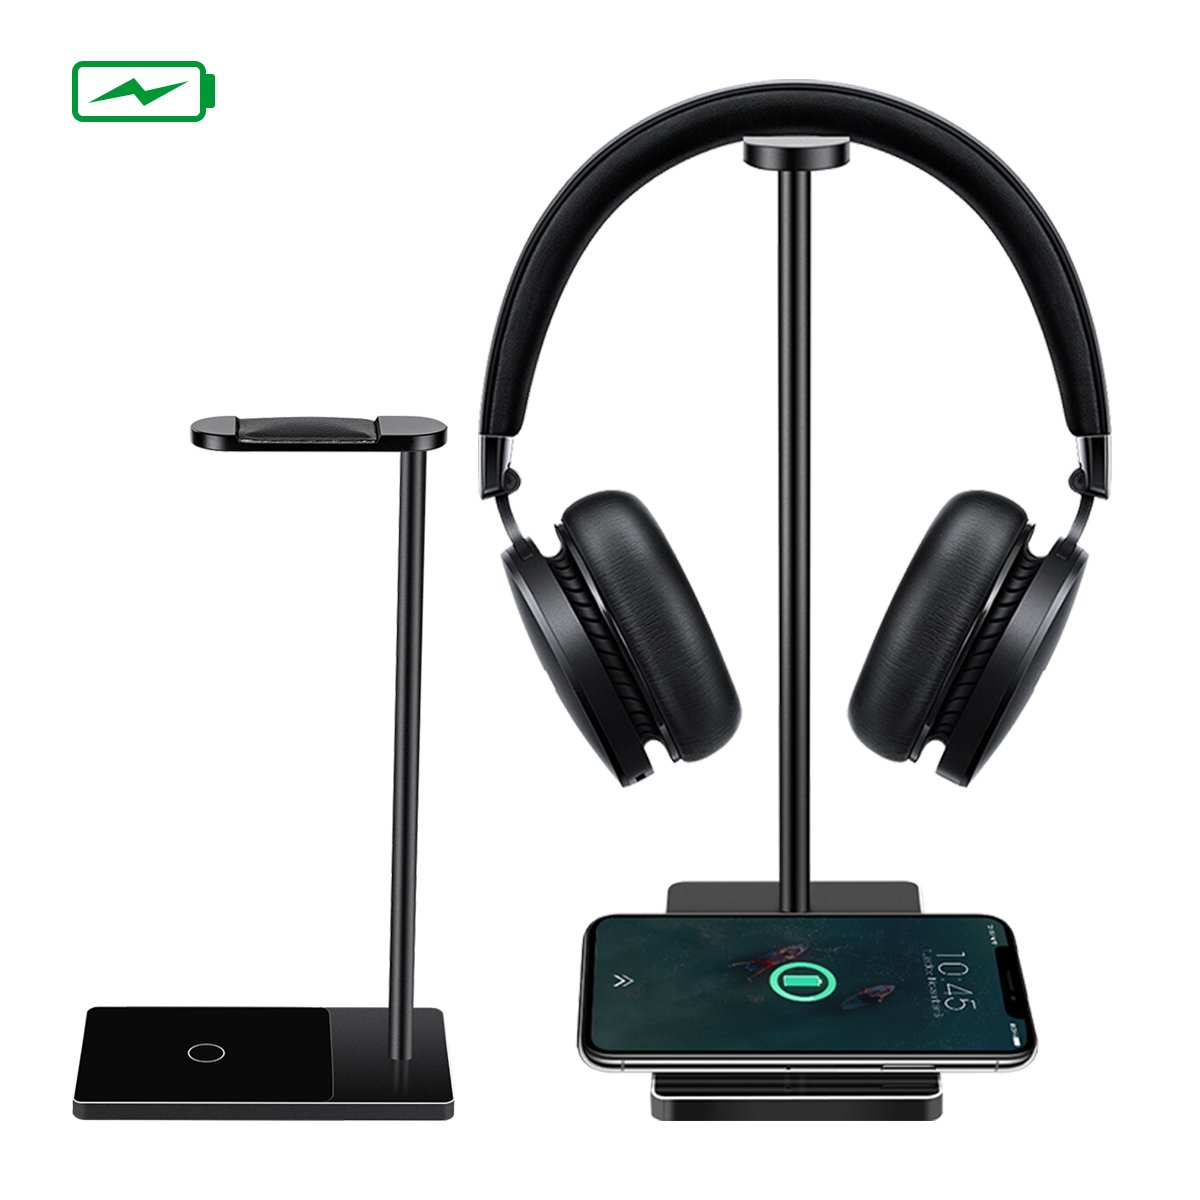 Wireless Charger, MWAY Wireless Charging Headphone Stand Aluminum+ Acrylic Headset Holder for All Headphones Headset Size,High Speed Charging for Galaxy S8/S8+/Note 8 5 S7/LG/HTC/iPhone 8/8Plus/X M WAY M WAYFirstmore2273